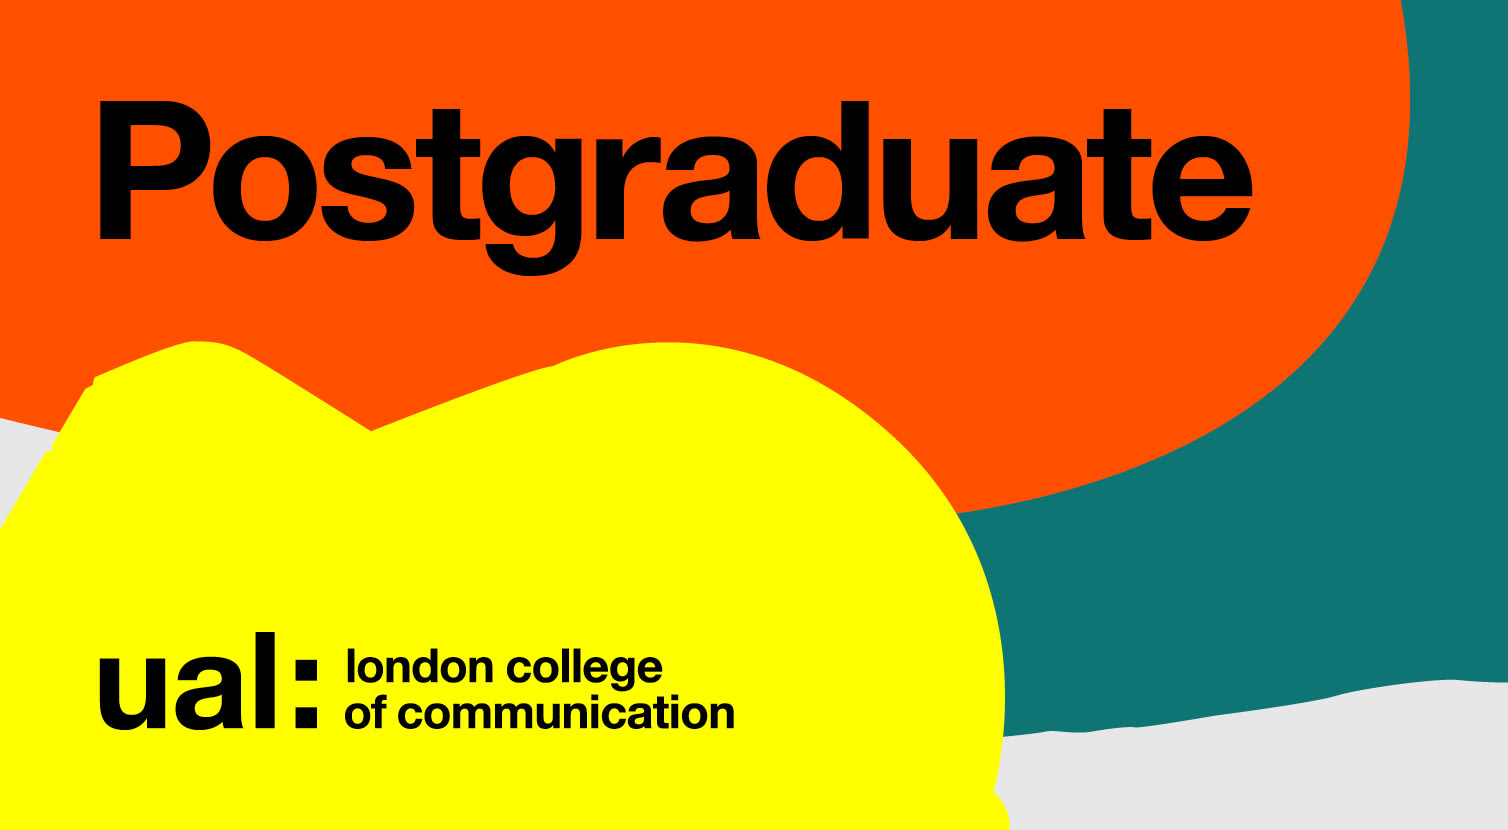 Lcc Postgraduate Open Day Interaction Design And Visual Communication Ual